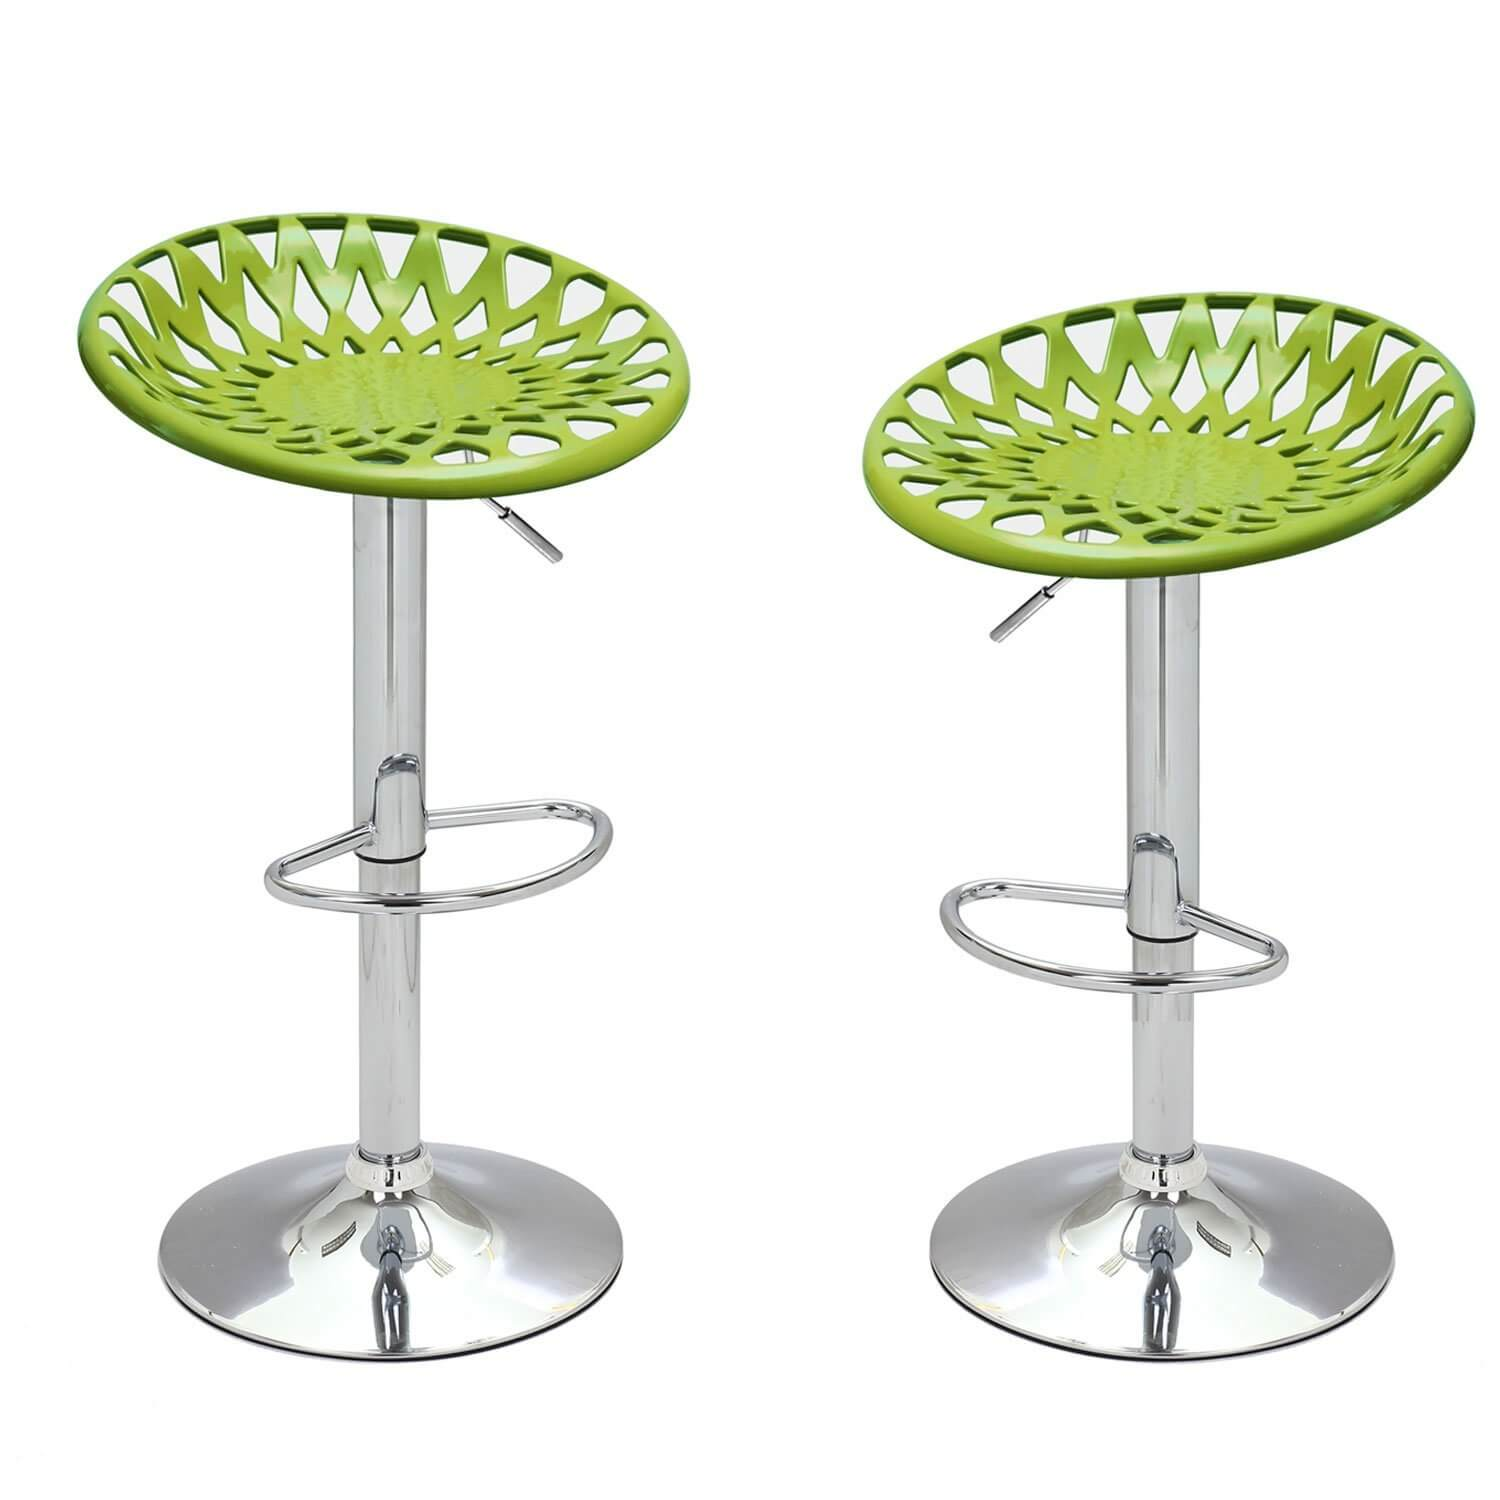 Adjustable Chrome Stool